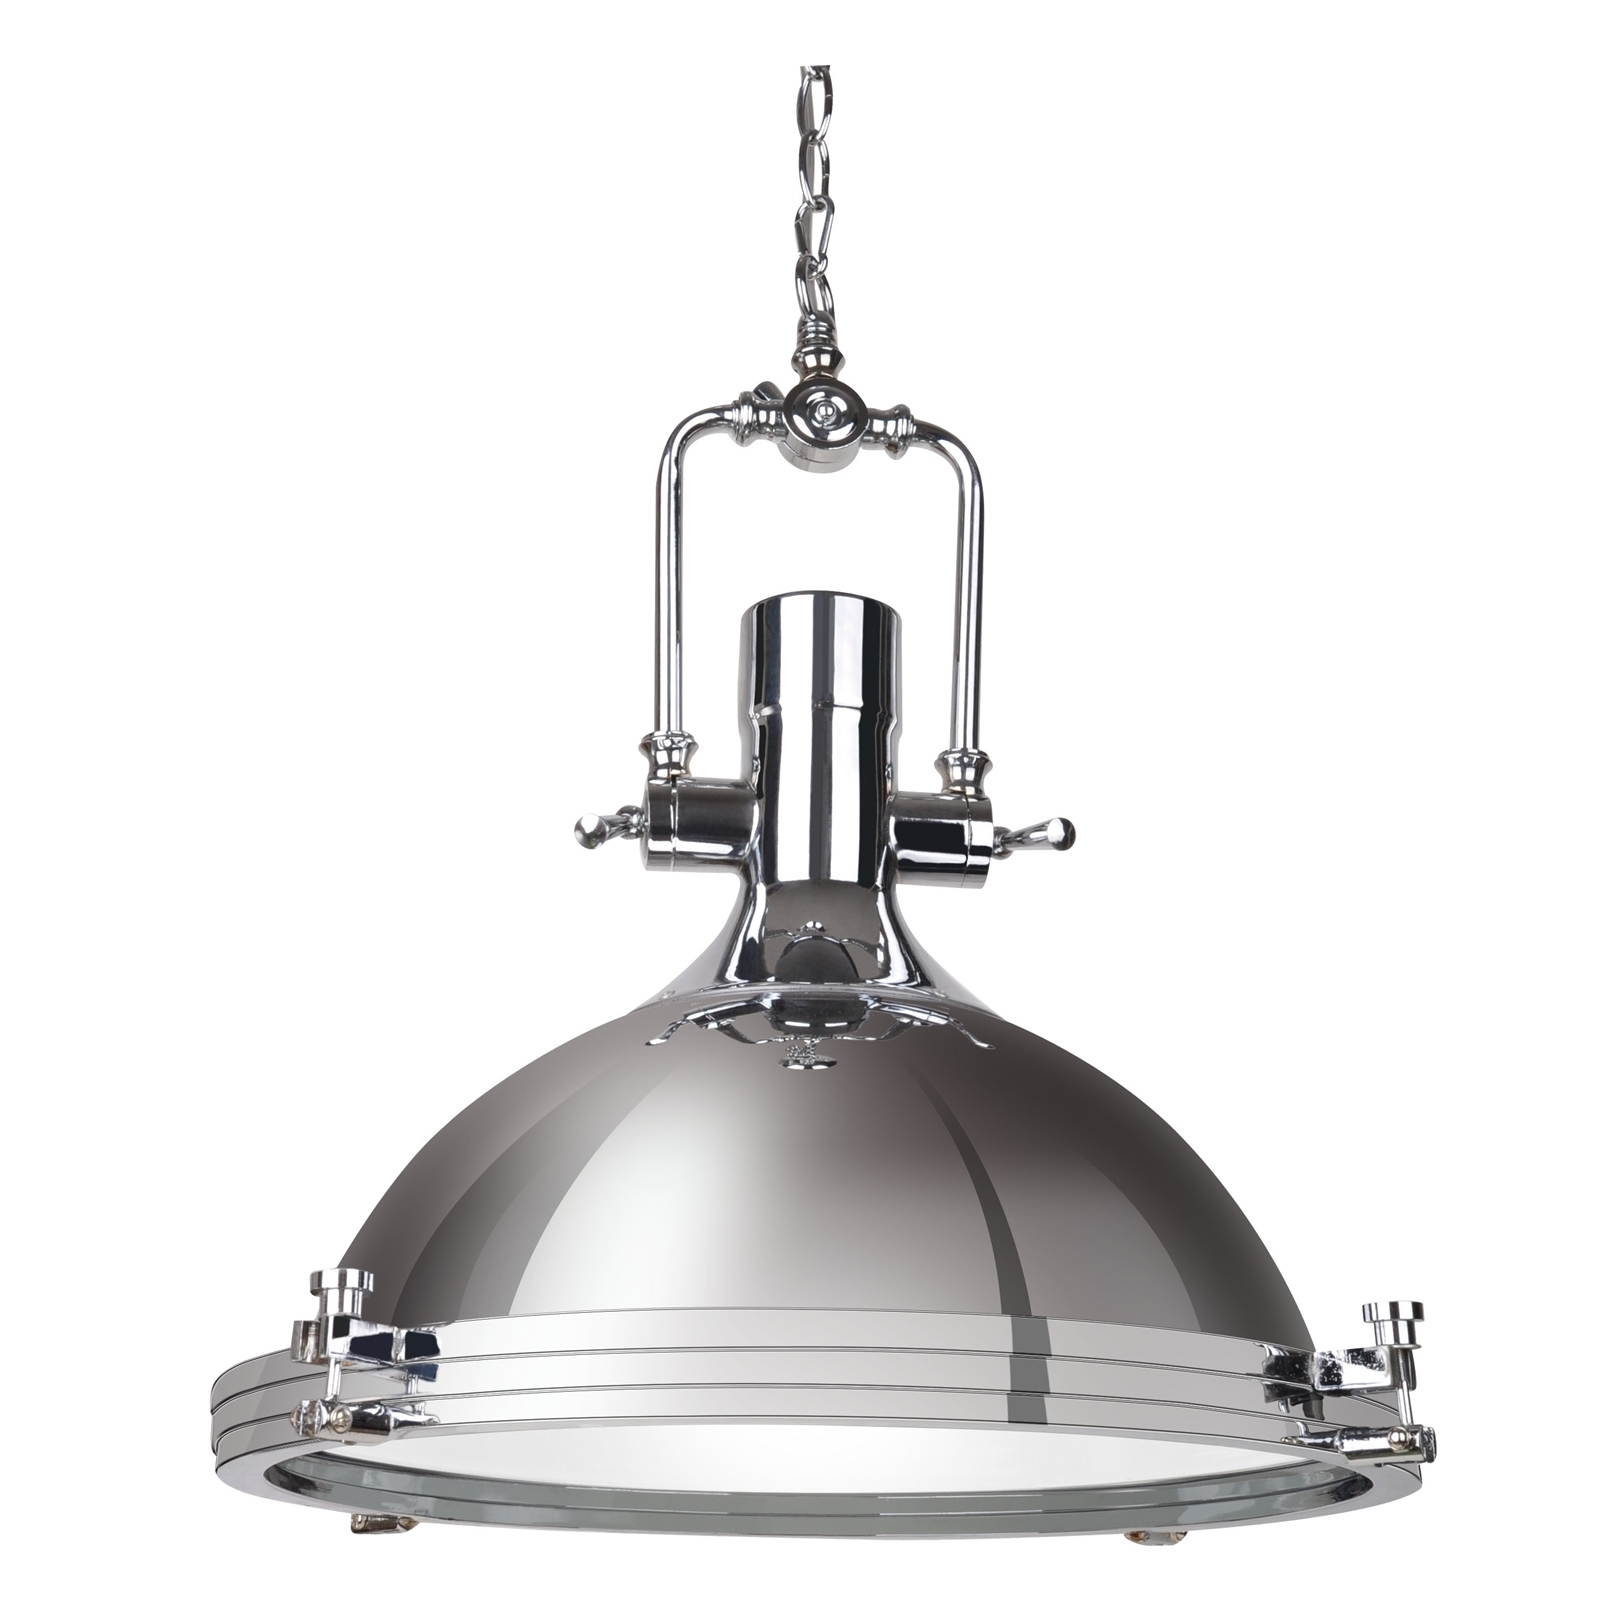 Find Cafe Lighting 40Cm 240V Turner Pendant Light – Chrome At Inside Outdoor Hanging Lights At Bunnings (#14 of 15)